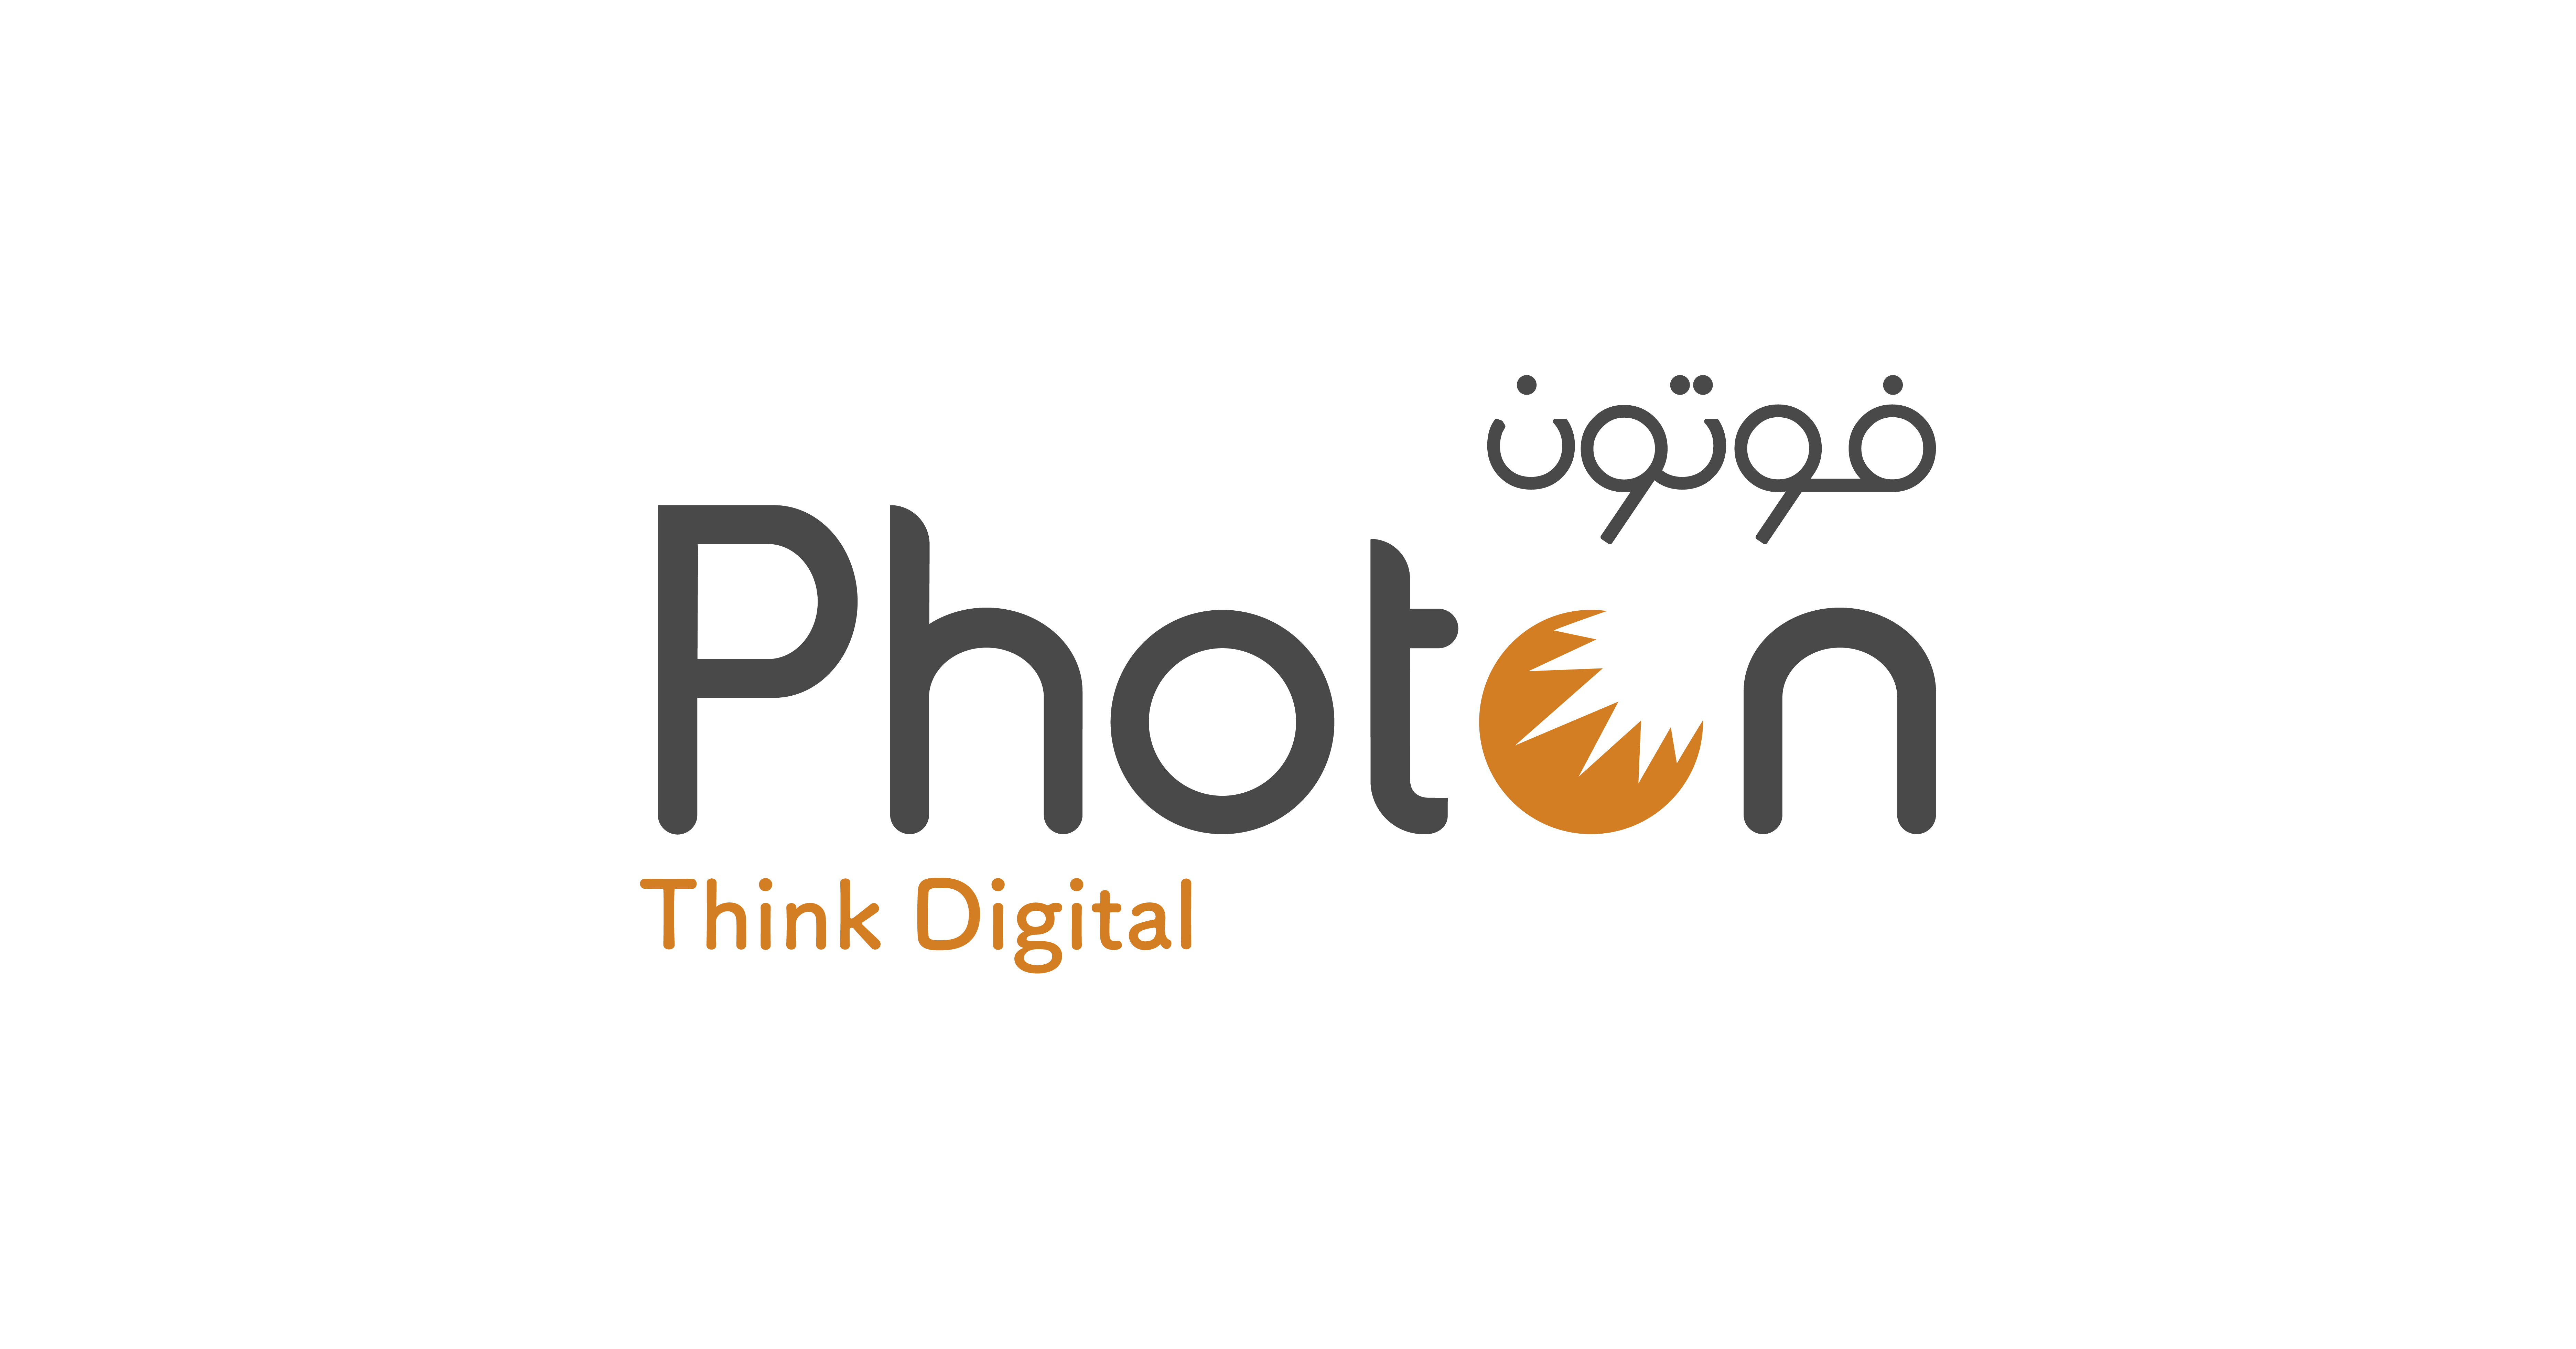 صورة Job: Marketing Executive at Photon scan in Cairo, Egypt